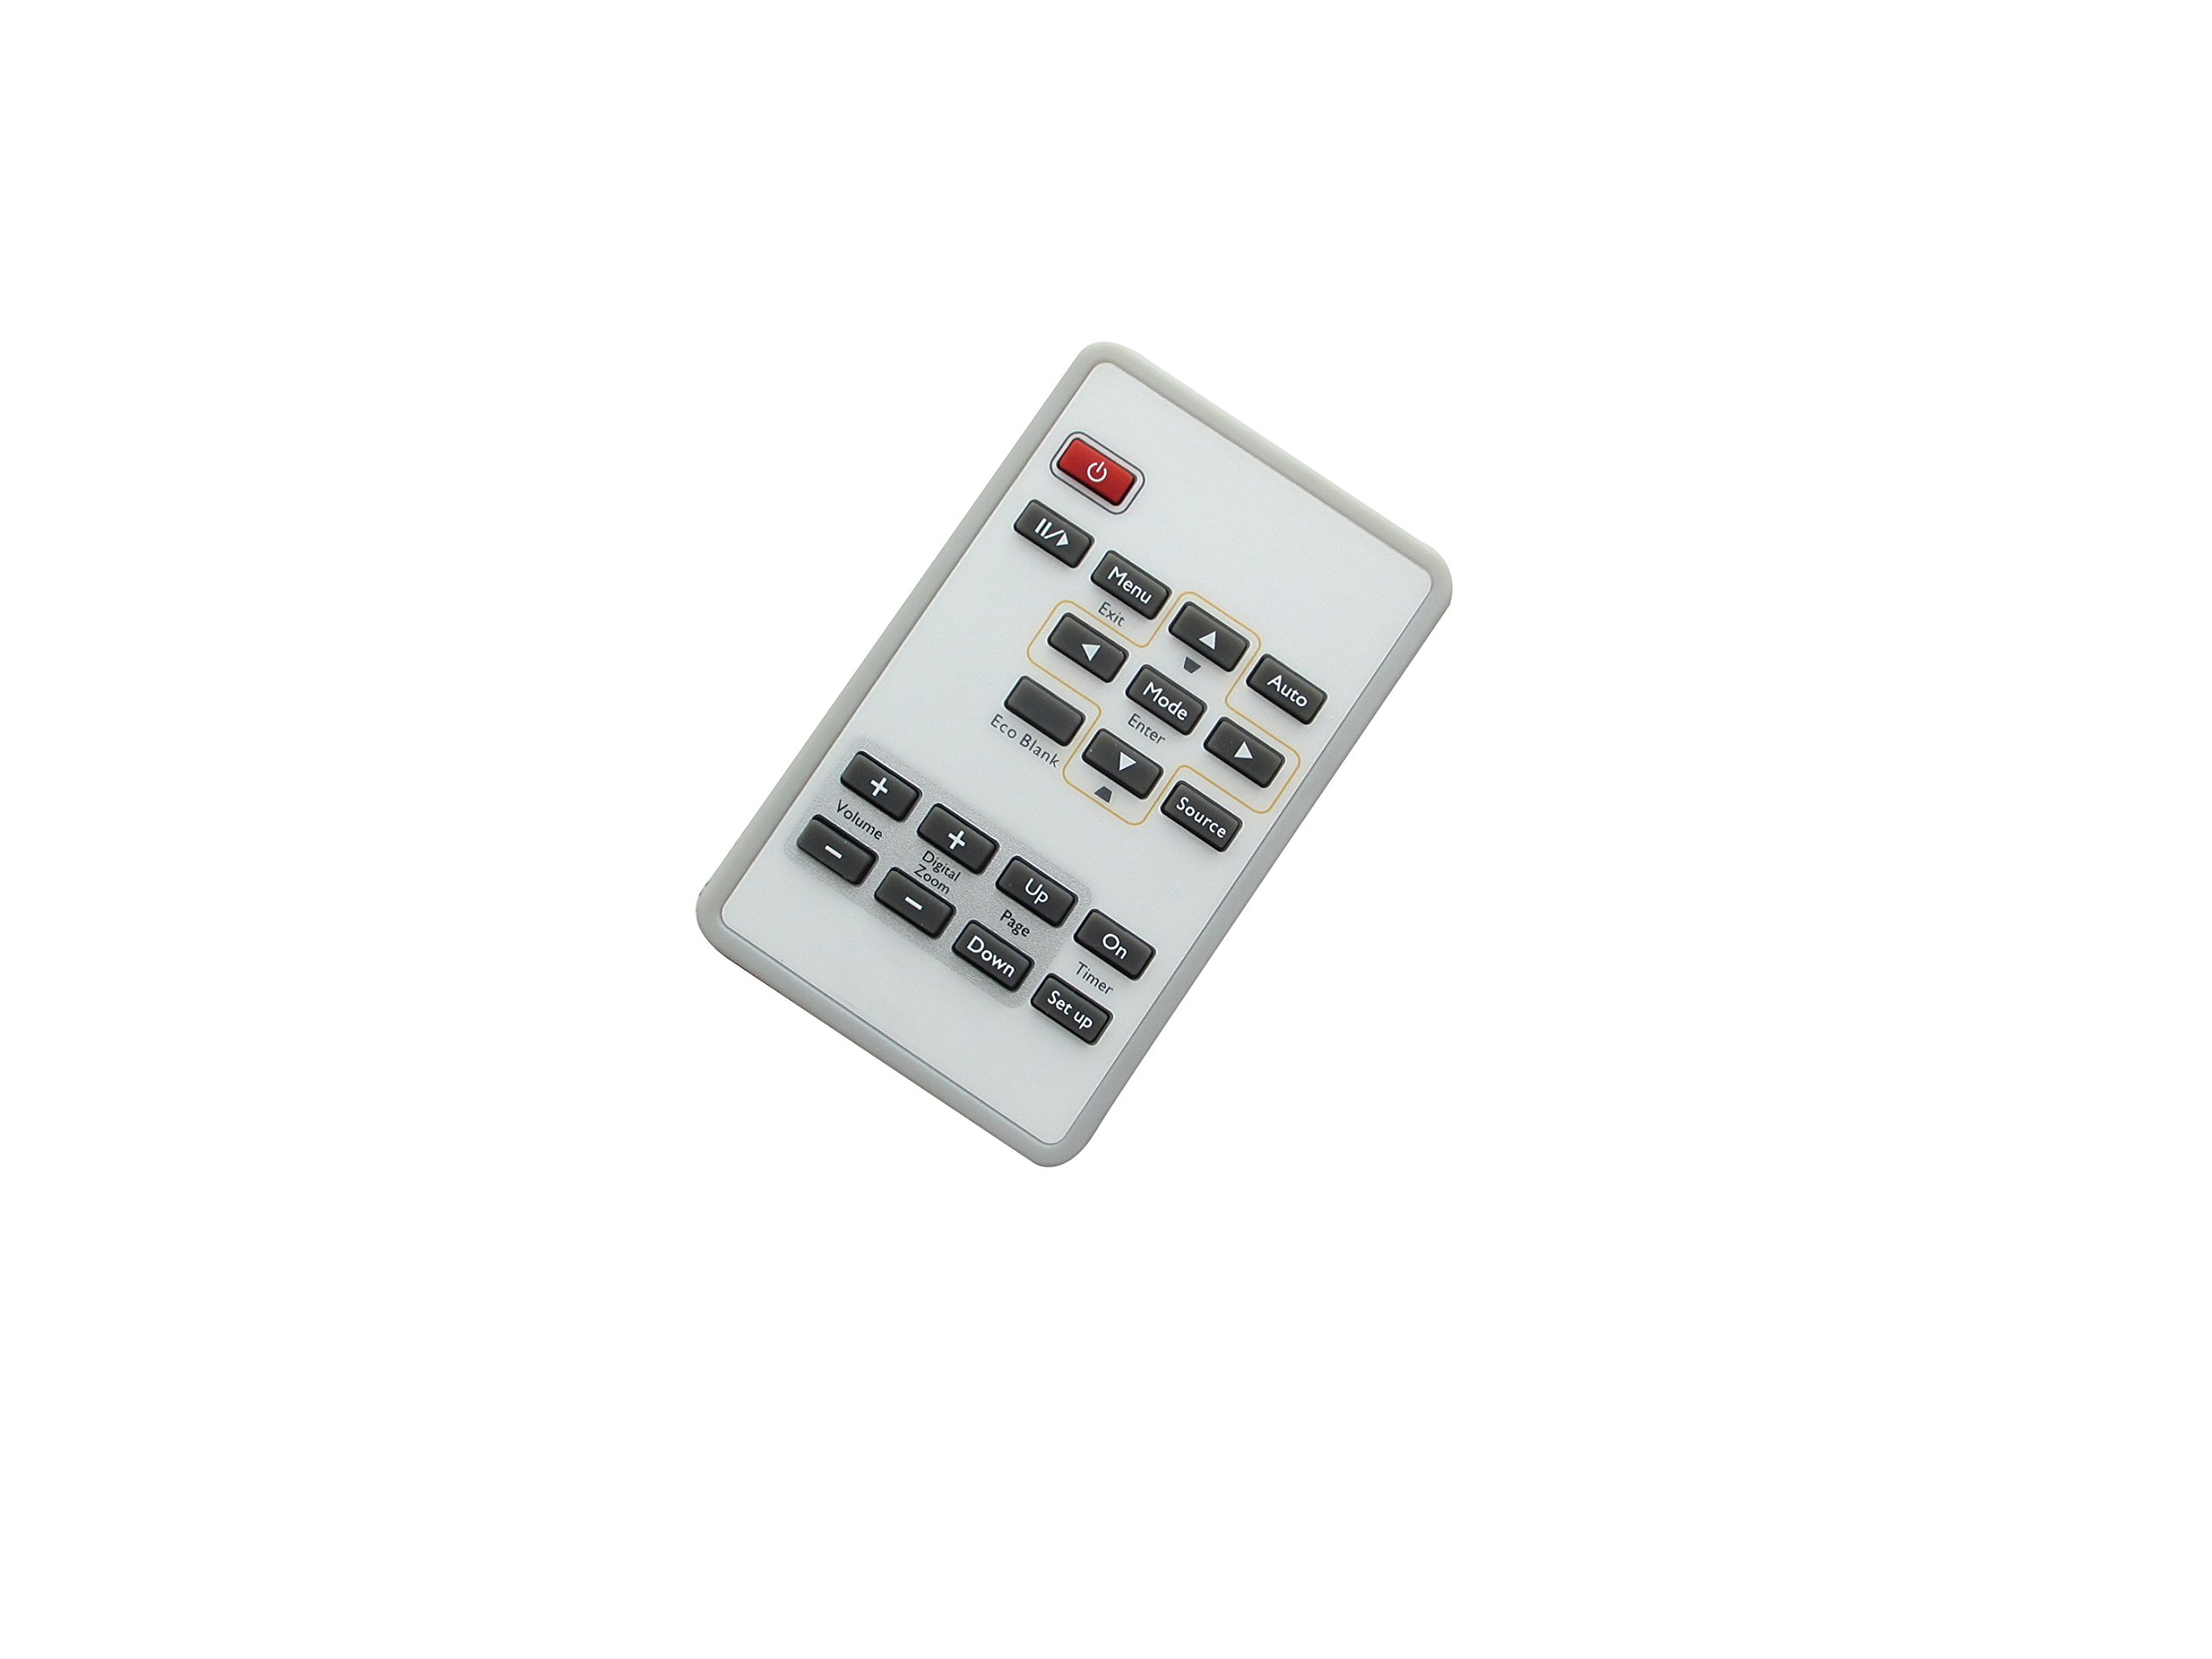 Universal Replacement Remote Control Fit For Benq MW526 MX813ST W1100 W1200 MS612ST DLP Digital Projector